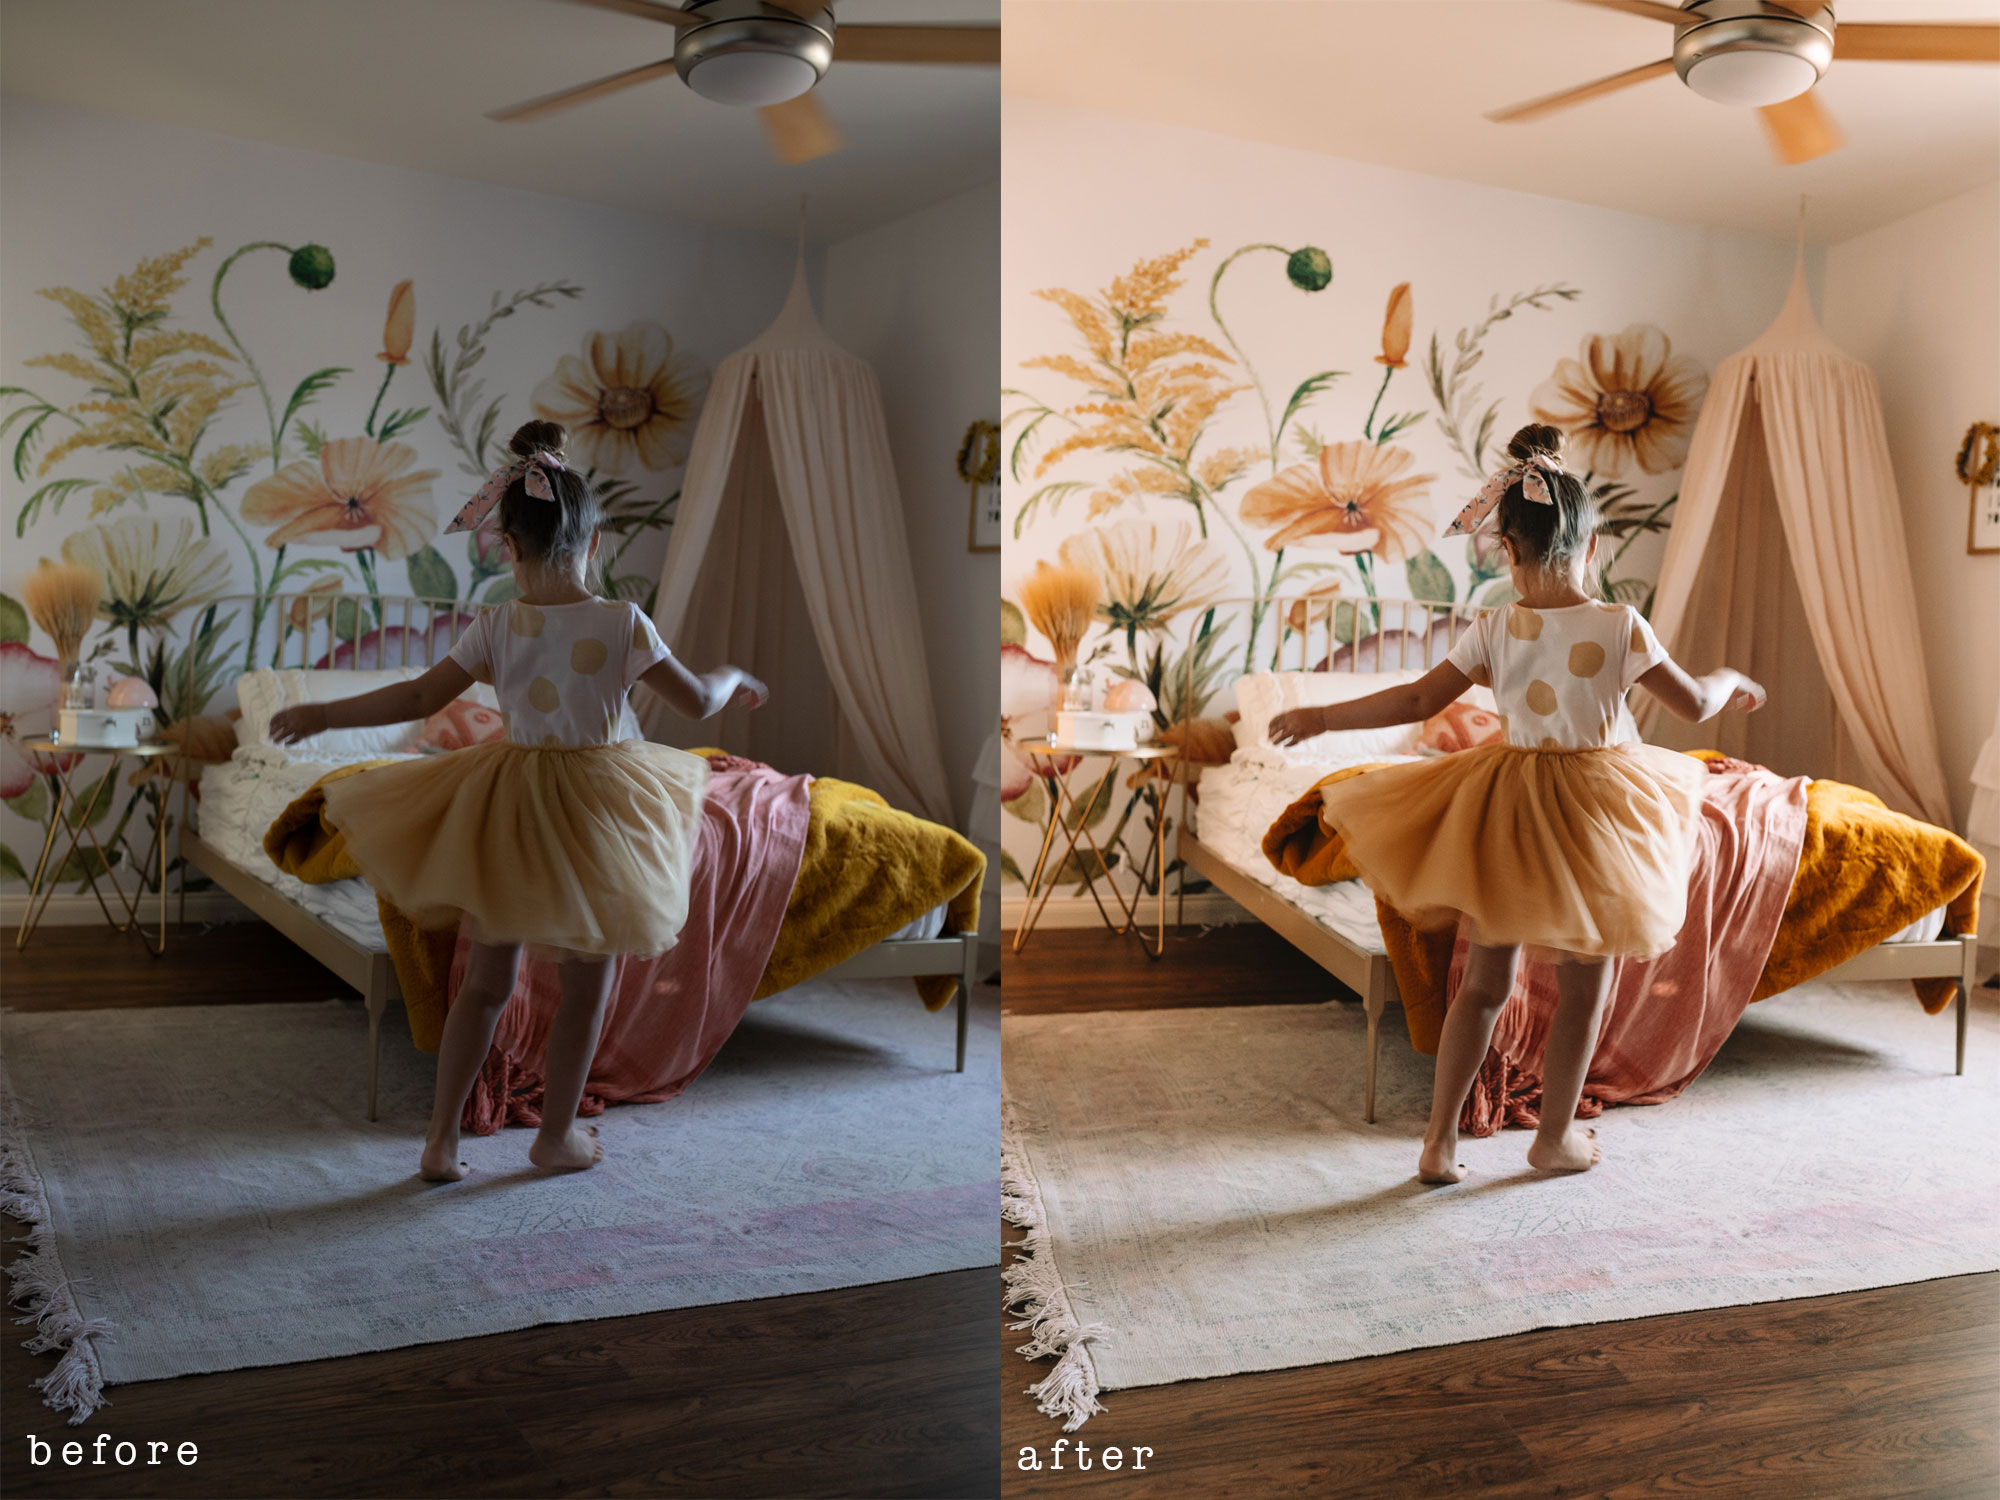 new presets from the lovedesignedlife #theldlpresets #lightroompresets #kidsroom #biggirlroom #photoediting